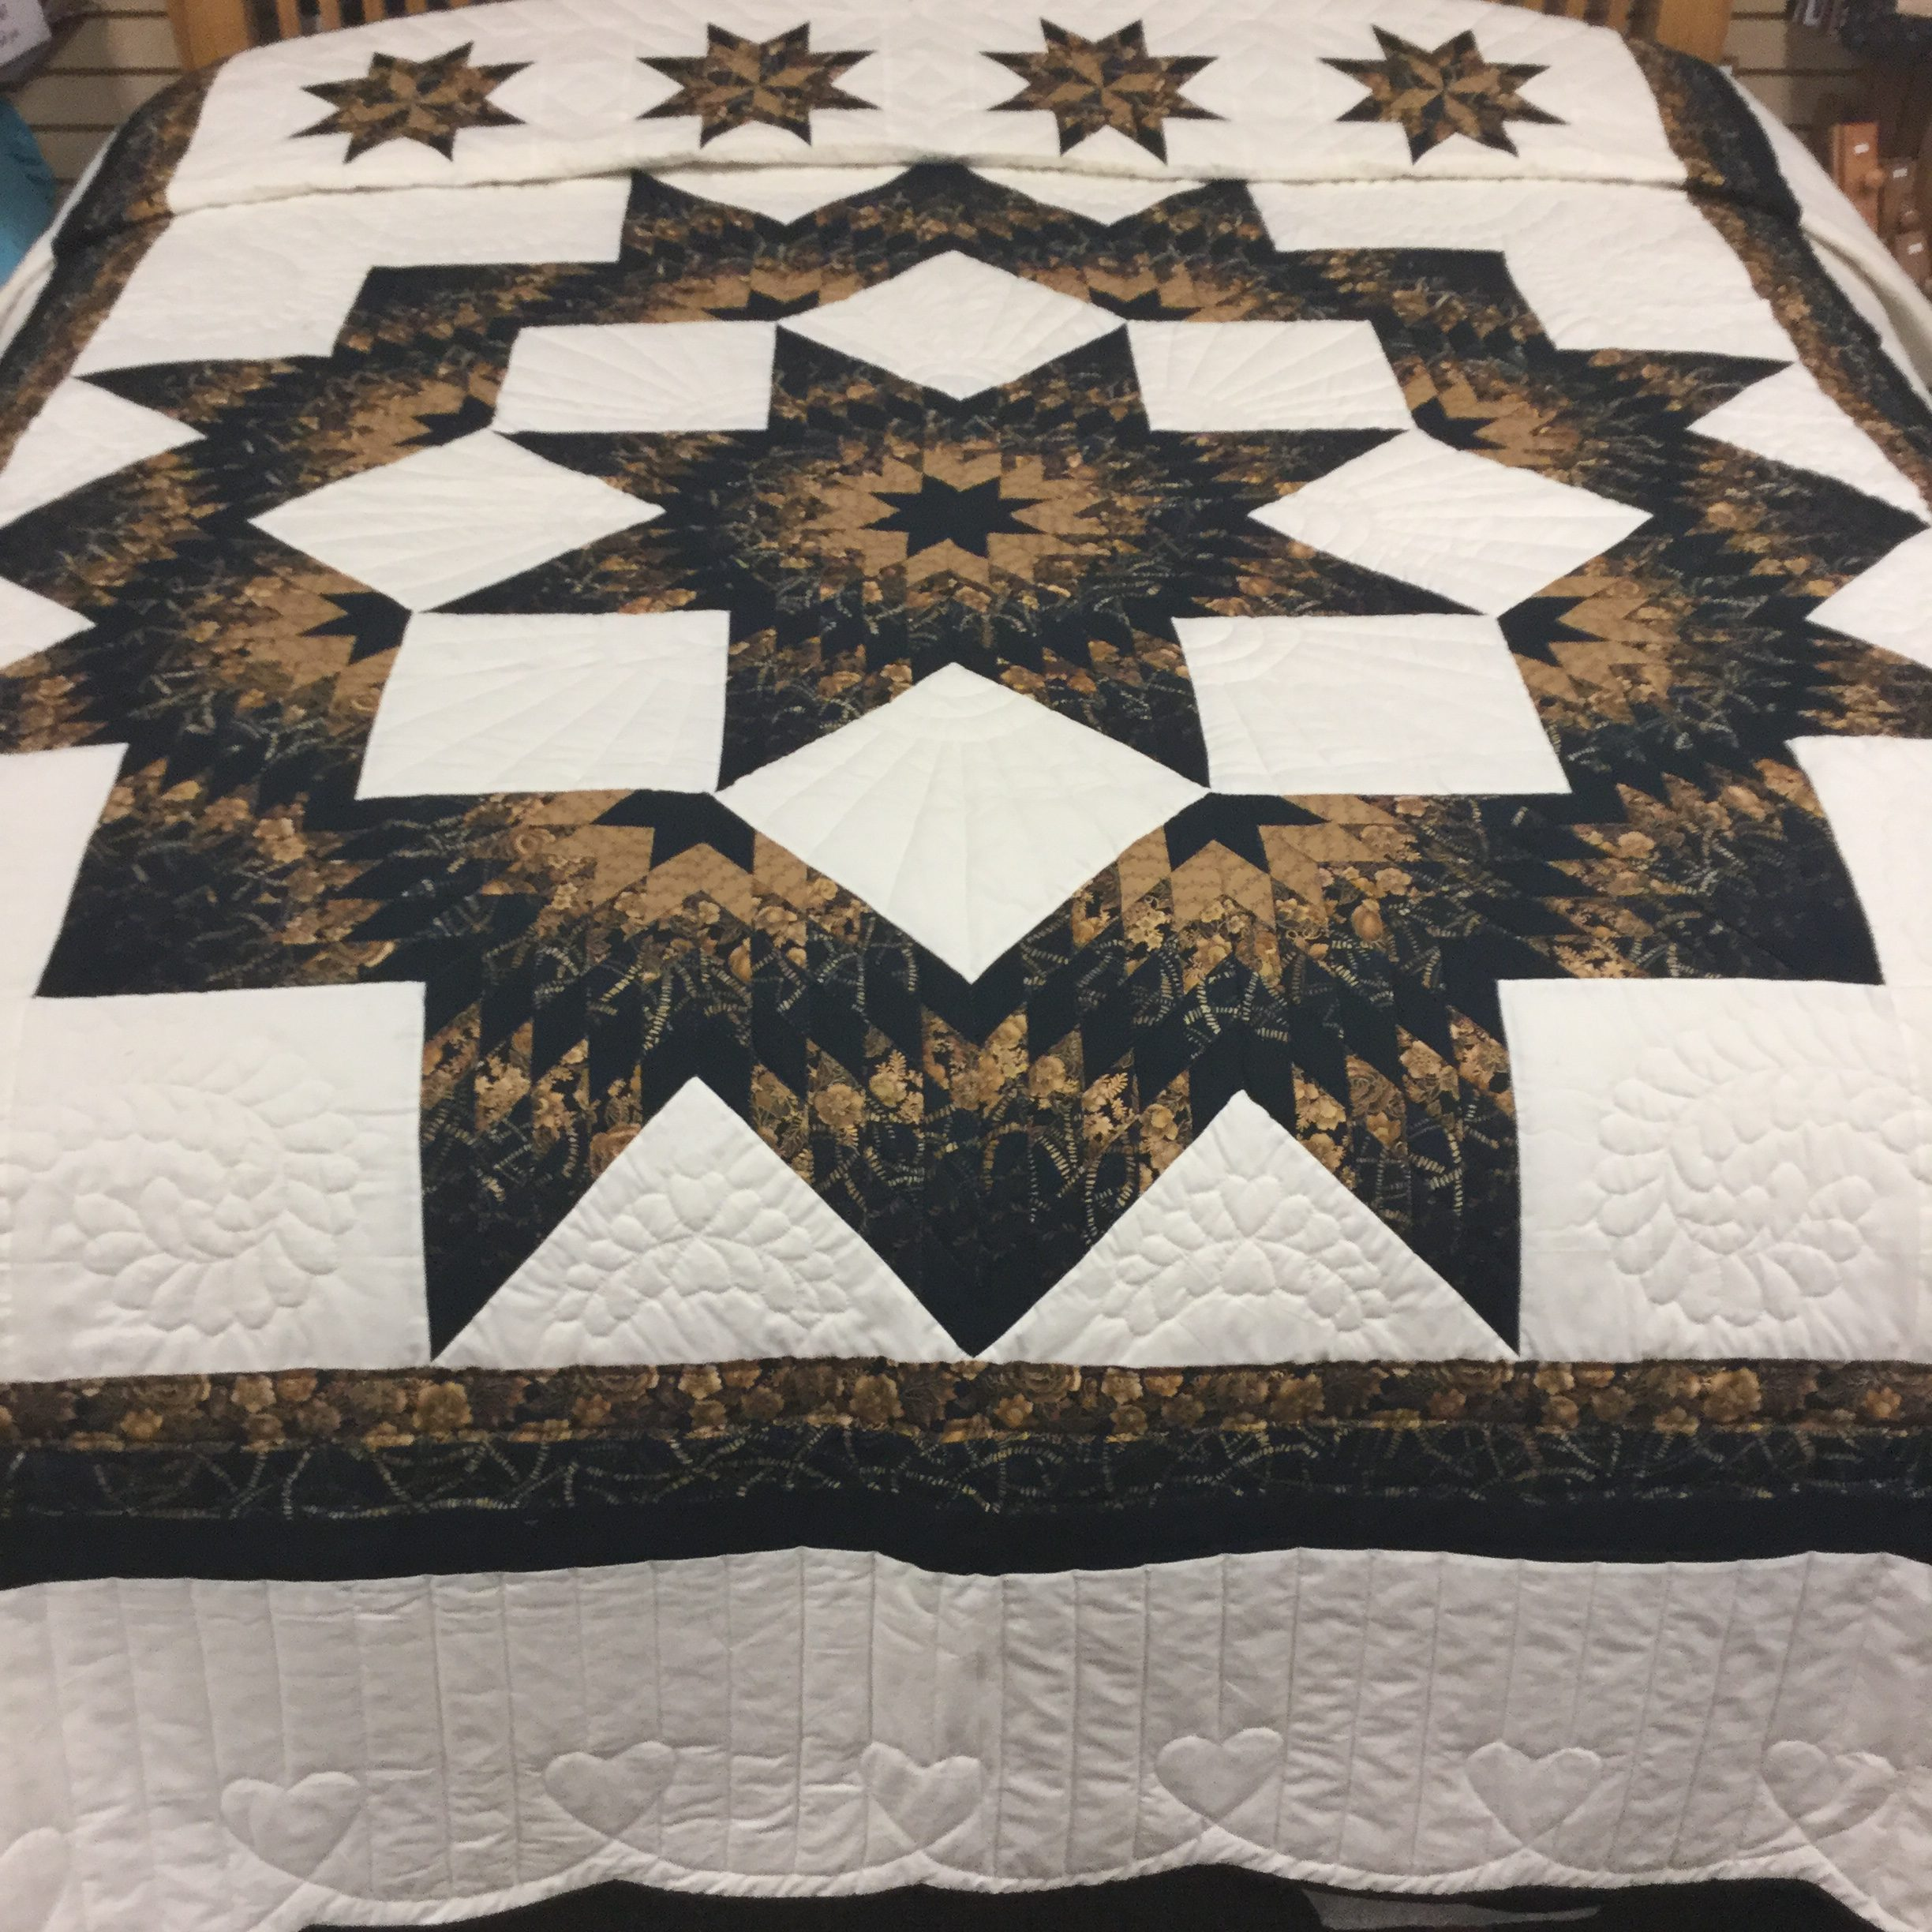 Homemade Quilts For Sale >> Broken Star Quilt | King | Family Farm Handcrafts | Handmade